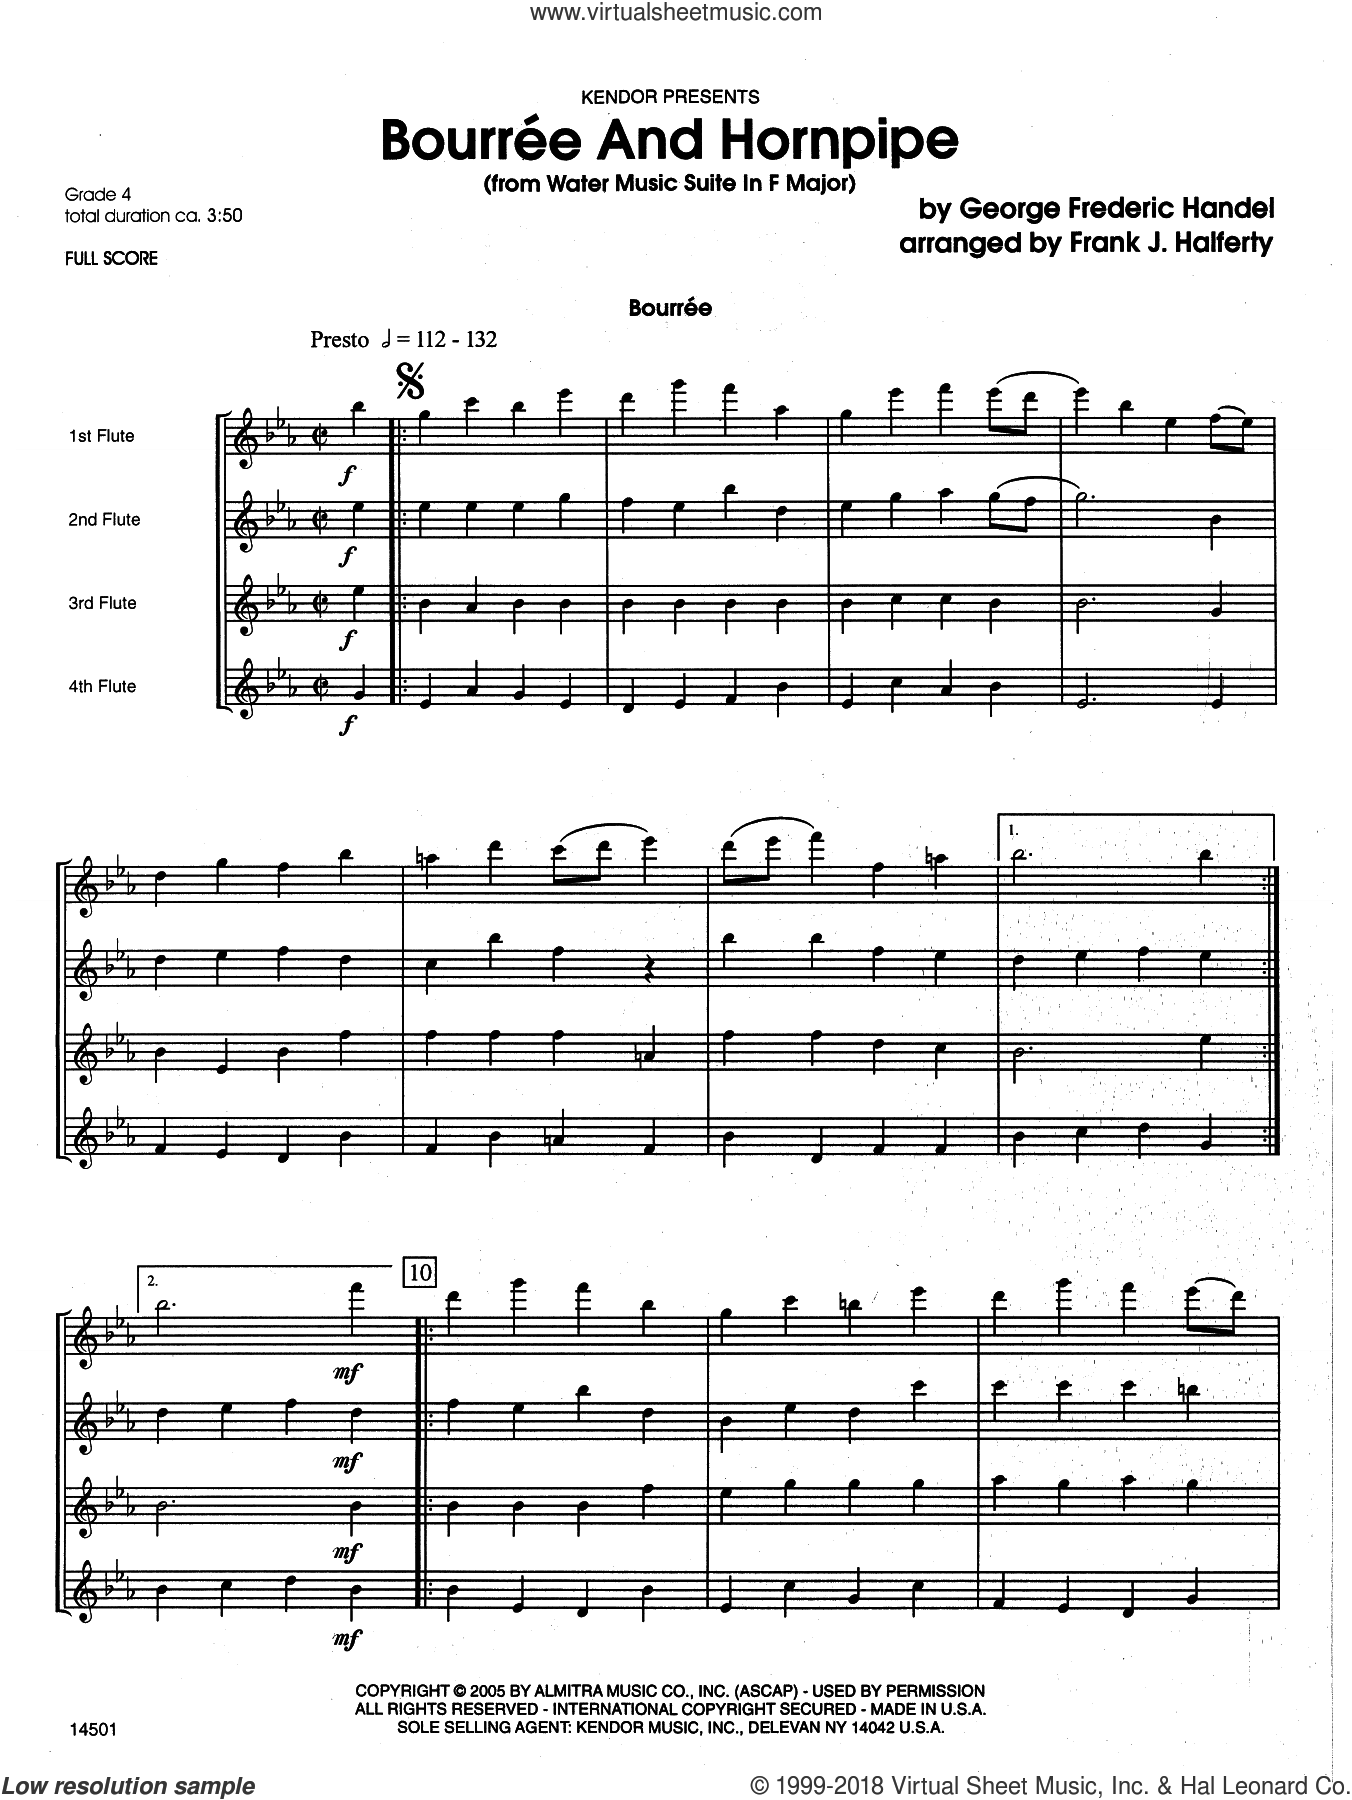 Bourree And Hornpipe (from Water Music Suite In F Major) (COMPLETE) sheet music for flute quartet by George Frideric Handel and Frank J. Halferty, classical score, intermediate skill level